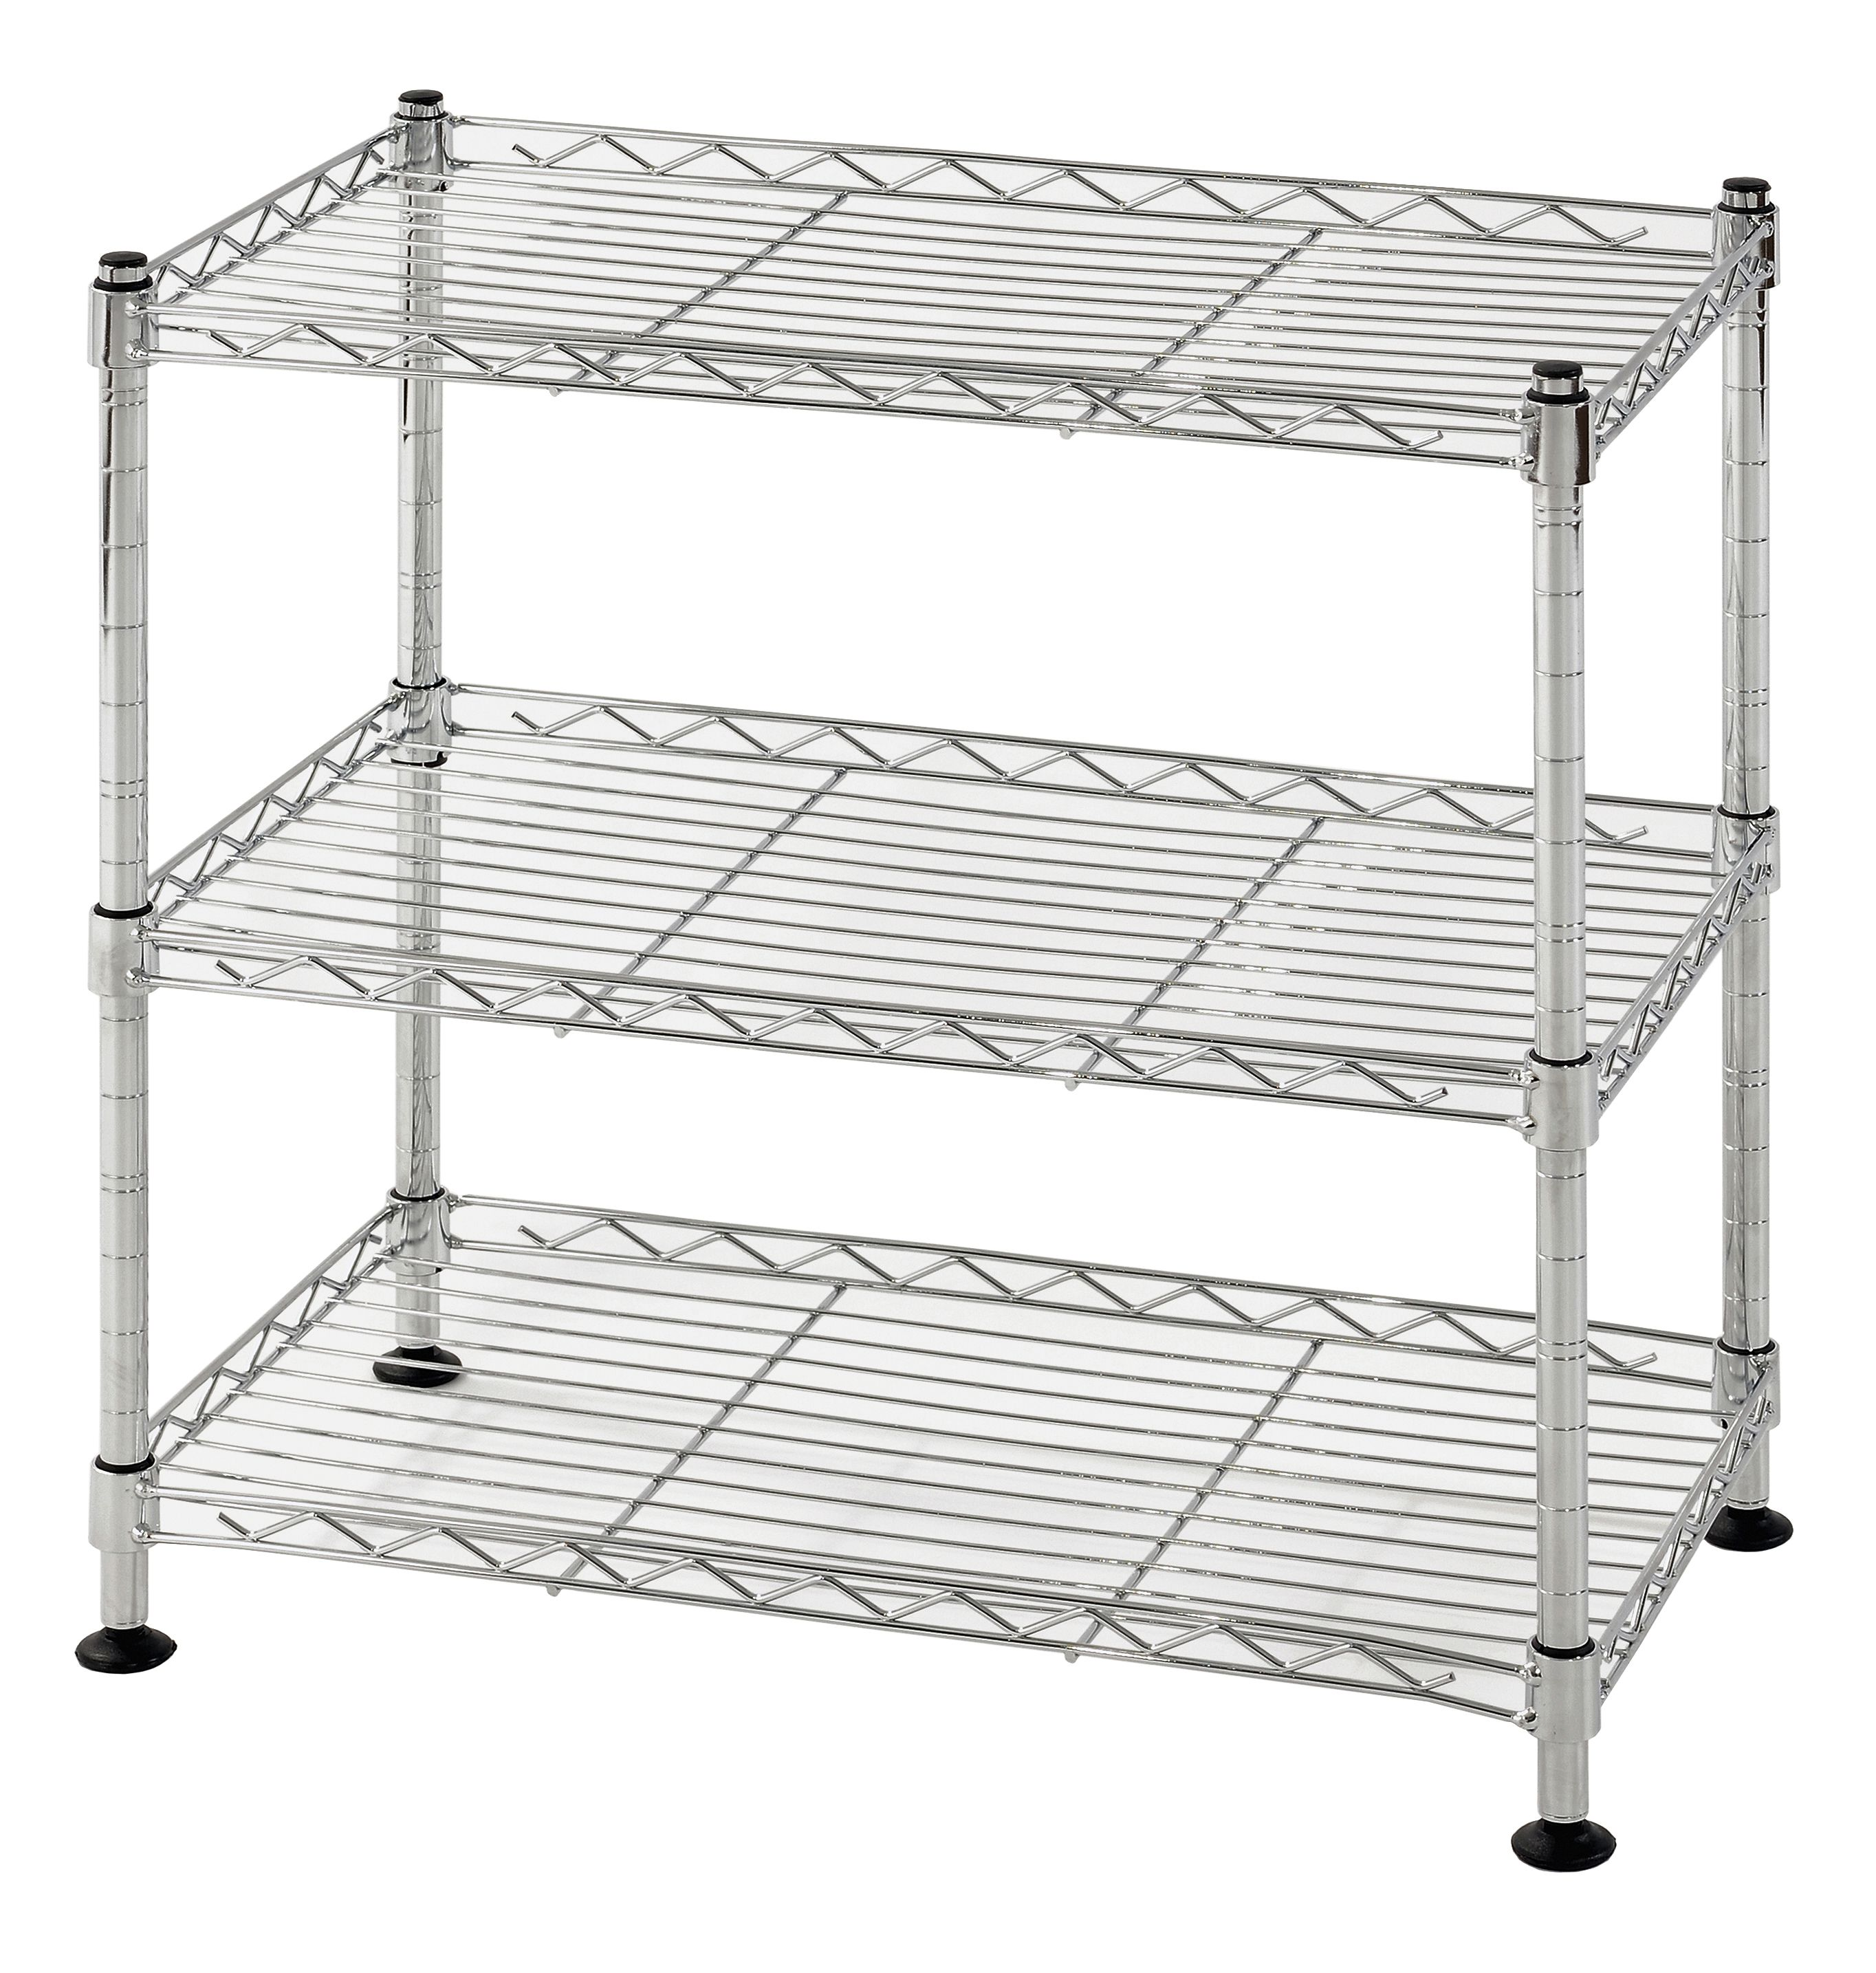 Muscle Rack 18 W X 10 D X 18 H 3 Tier Steel Wire Shelving Unit 264 Lb Capacity Chrome Walmart Com In 2020 Wire Shelving Wire Shelving Units Commercial Shelving